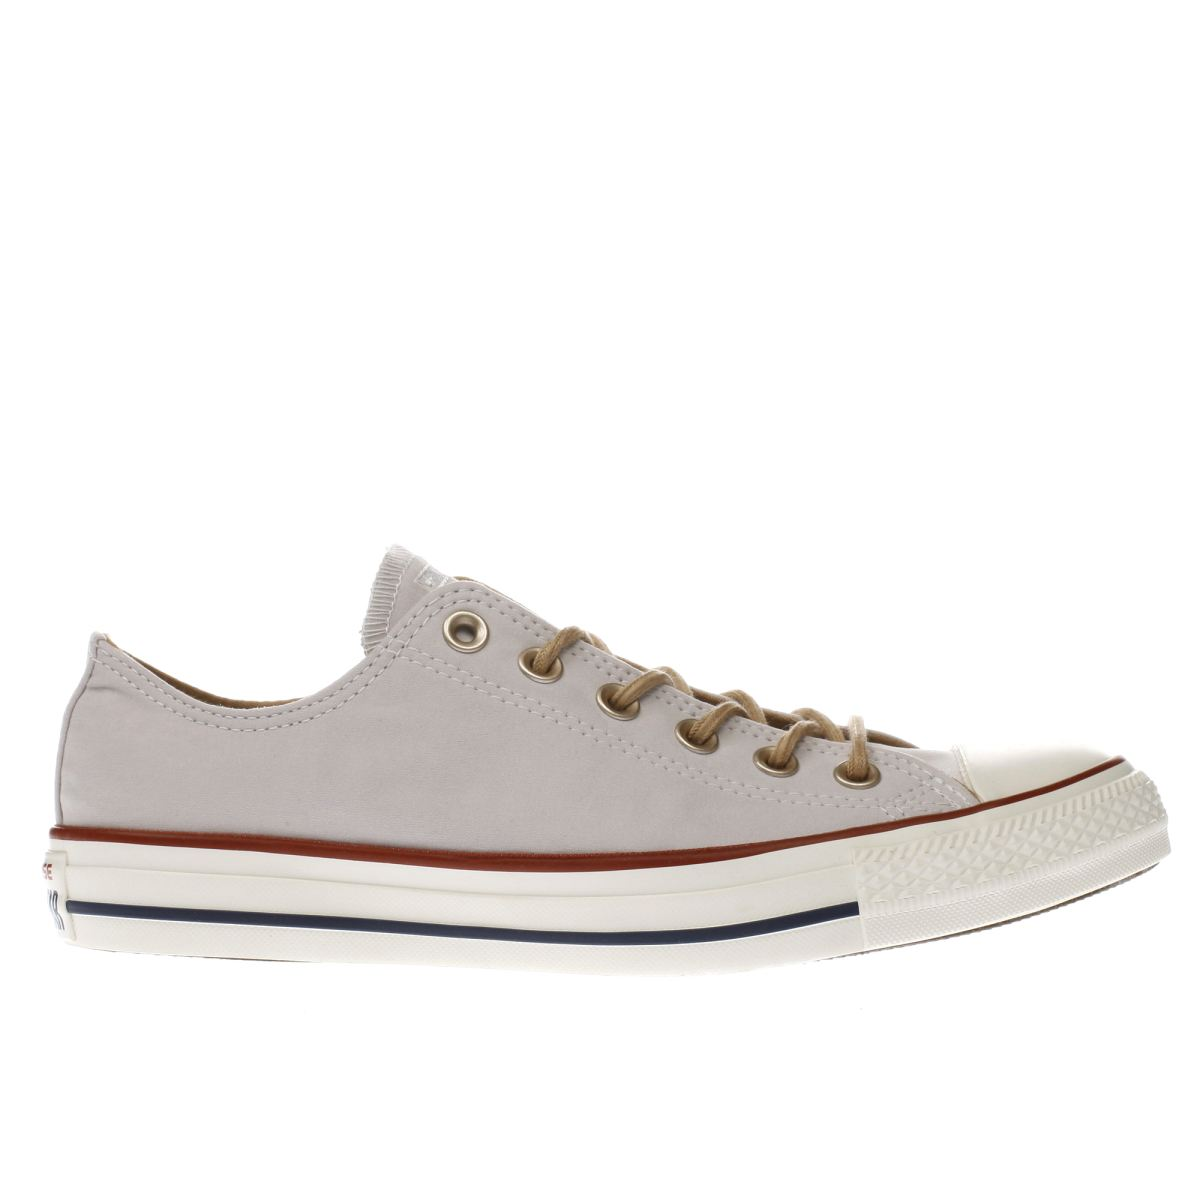 converse pale lilac all star peached ox trainers